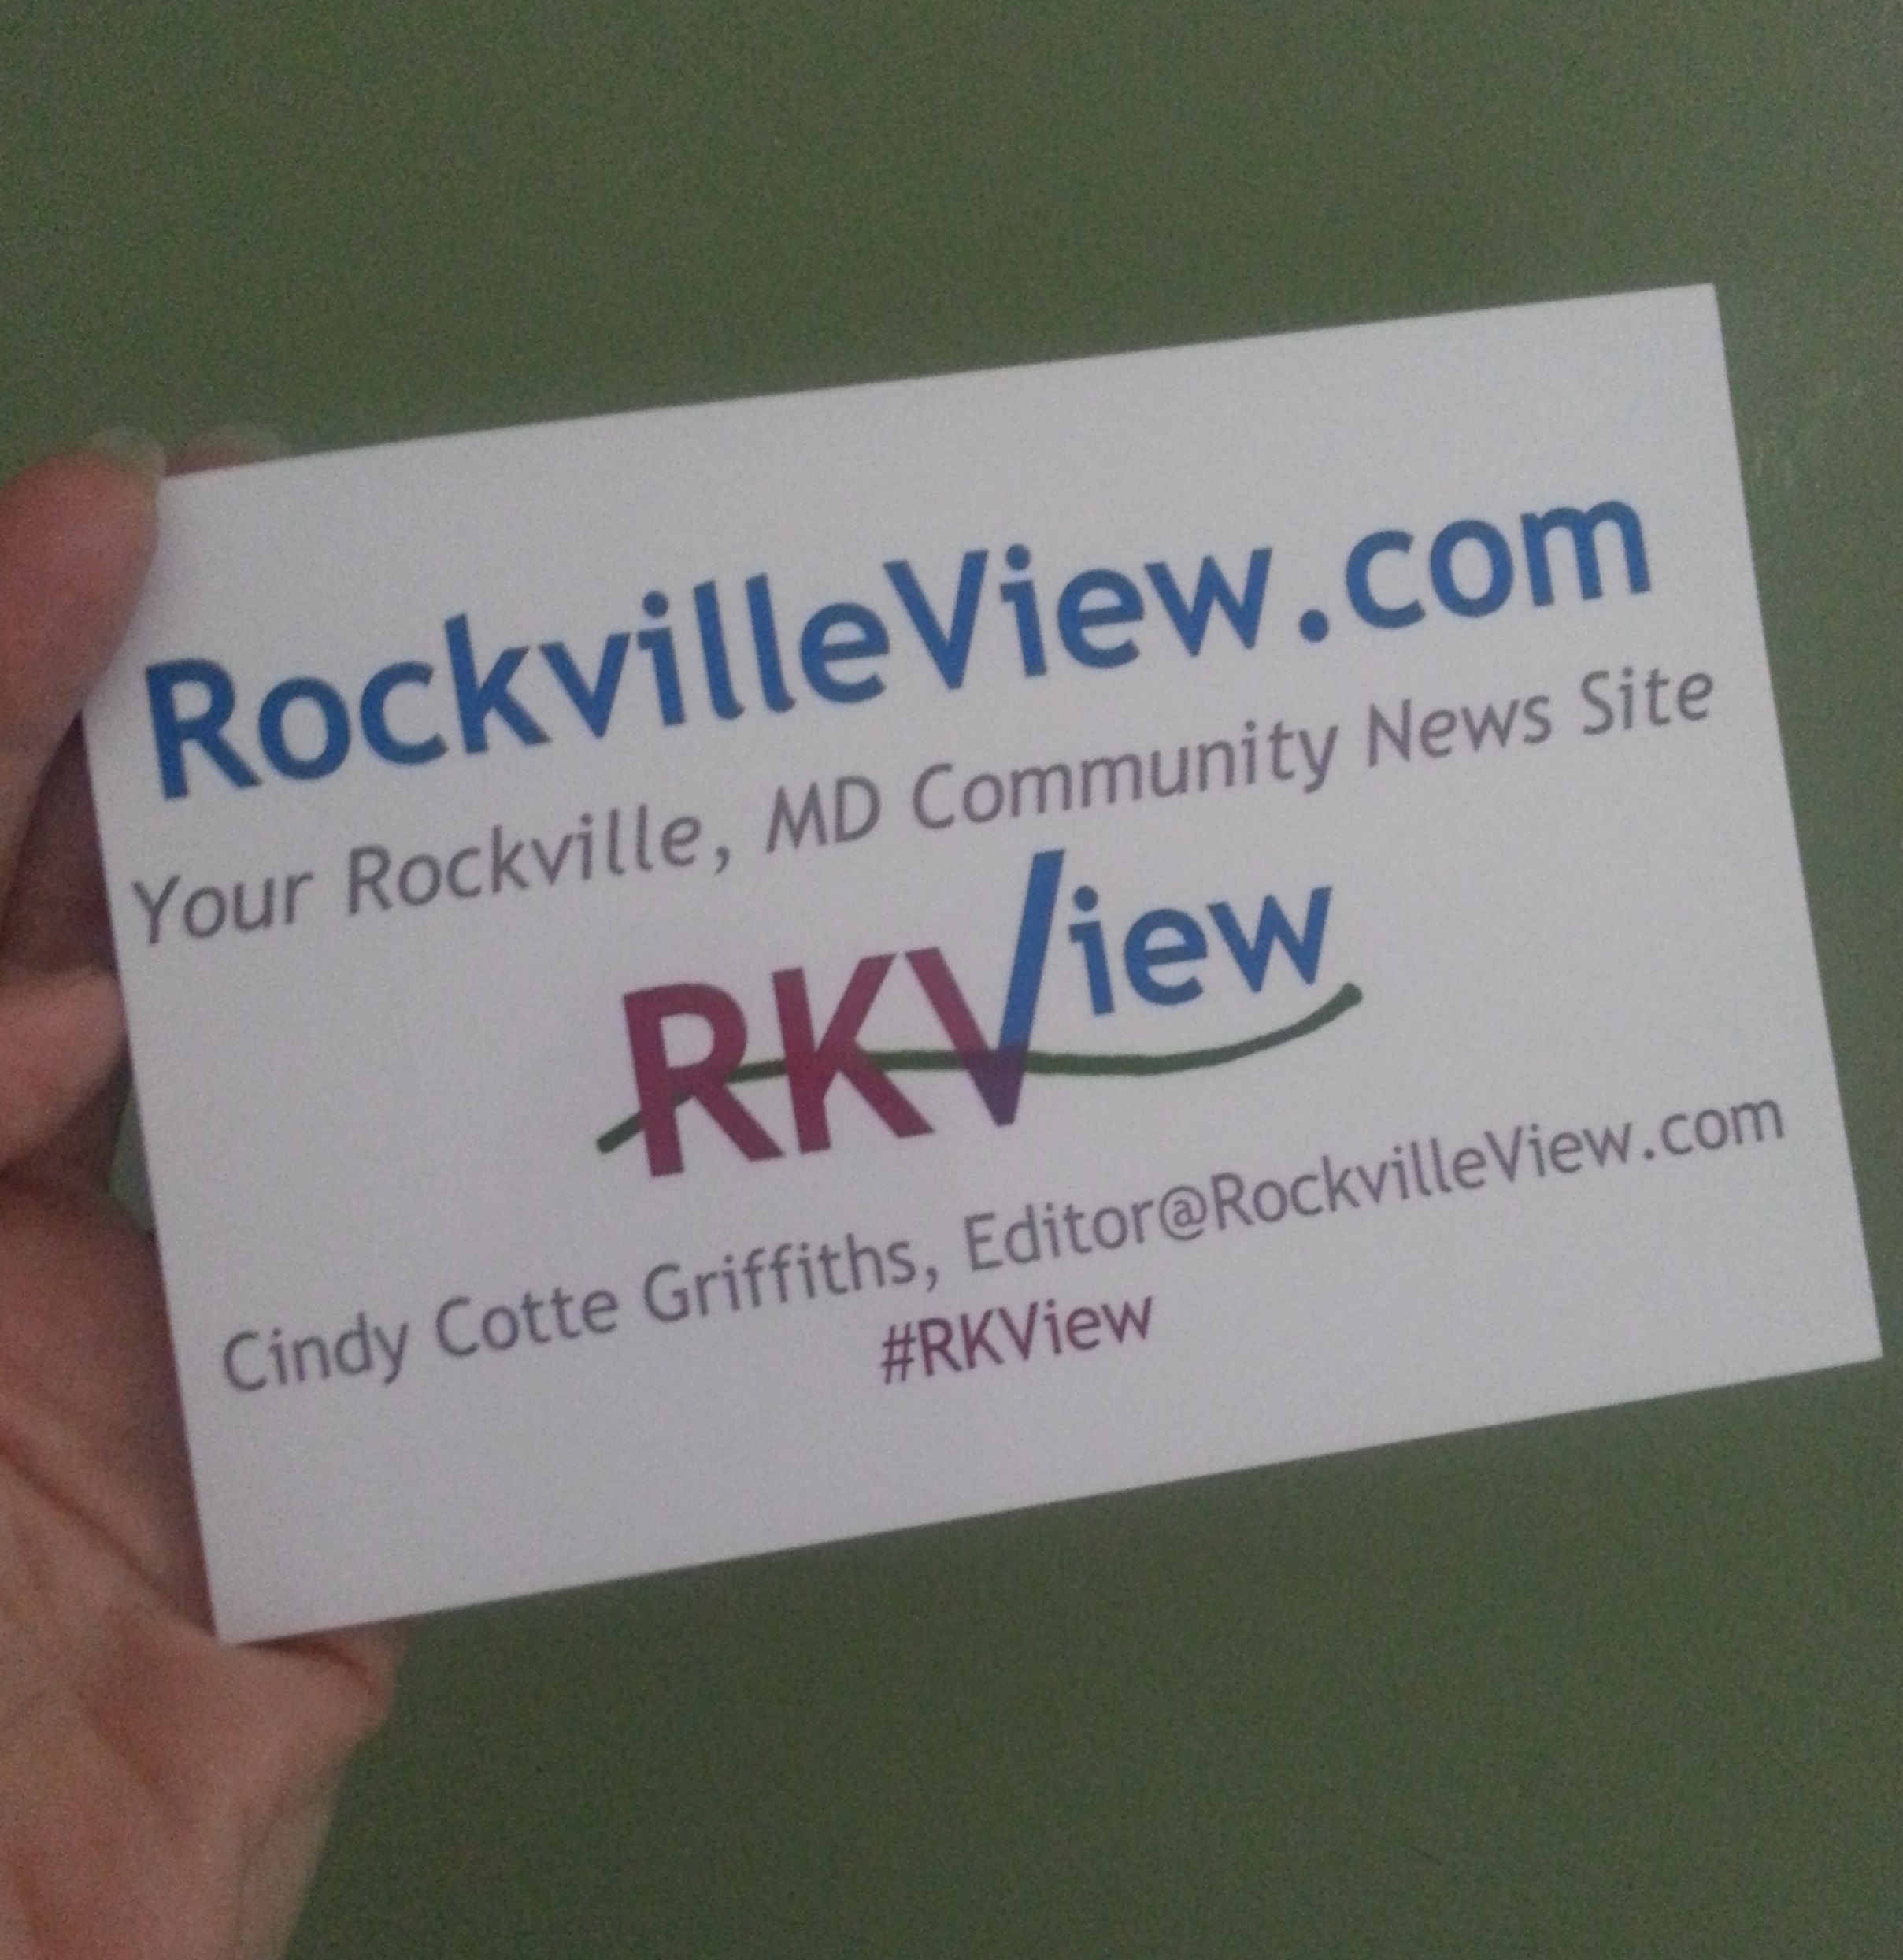 Websites: Rockville View and Trying Not to Bneg